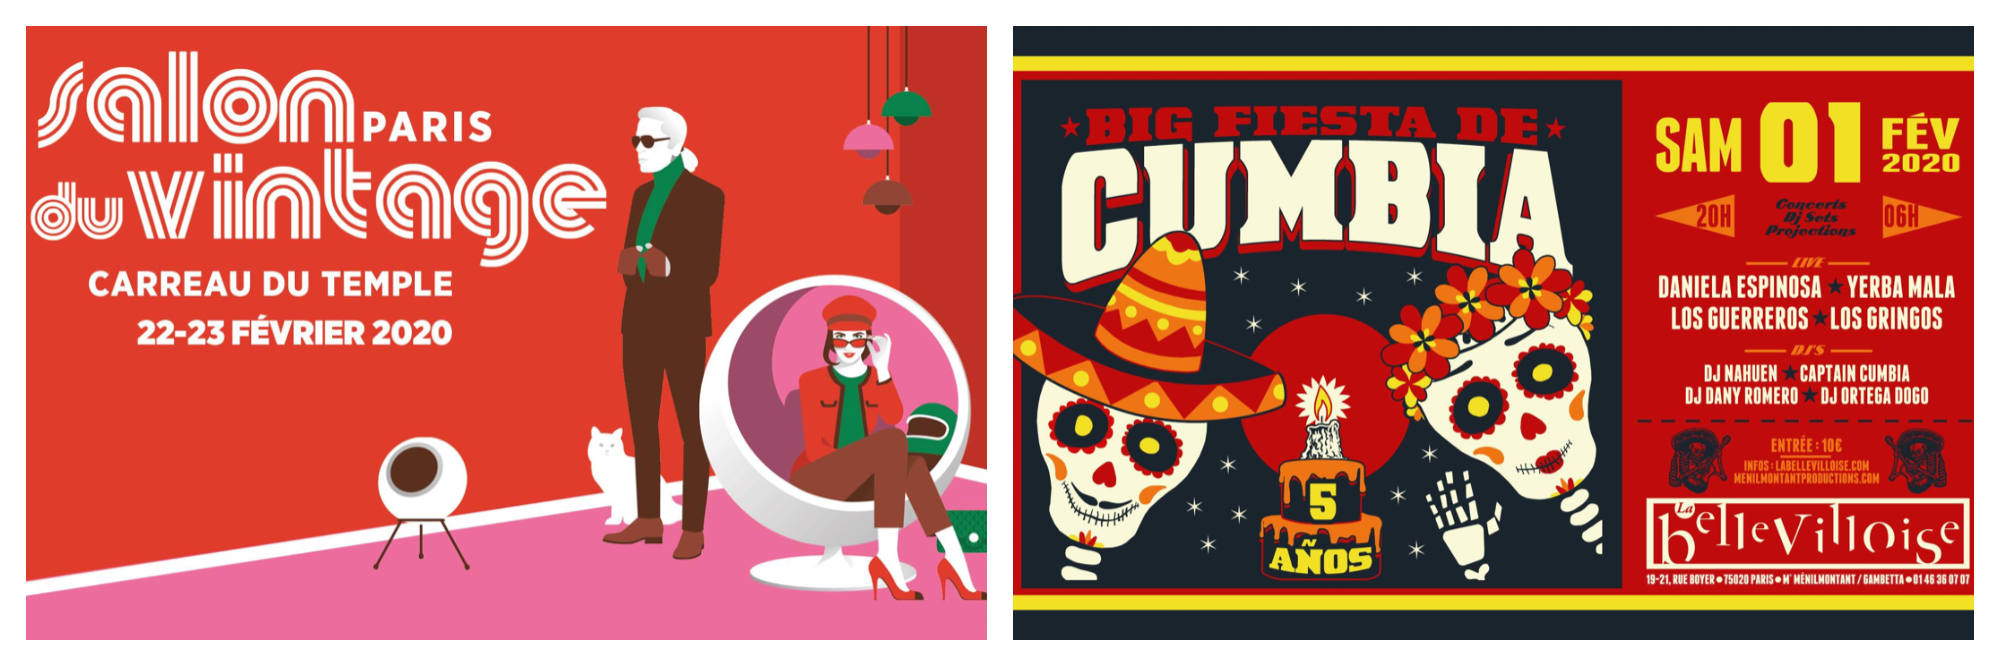 Left, poster for vintage event in Paris. Right, poster for a Mexican fiesta in Paris this February.